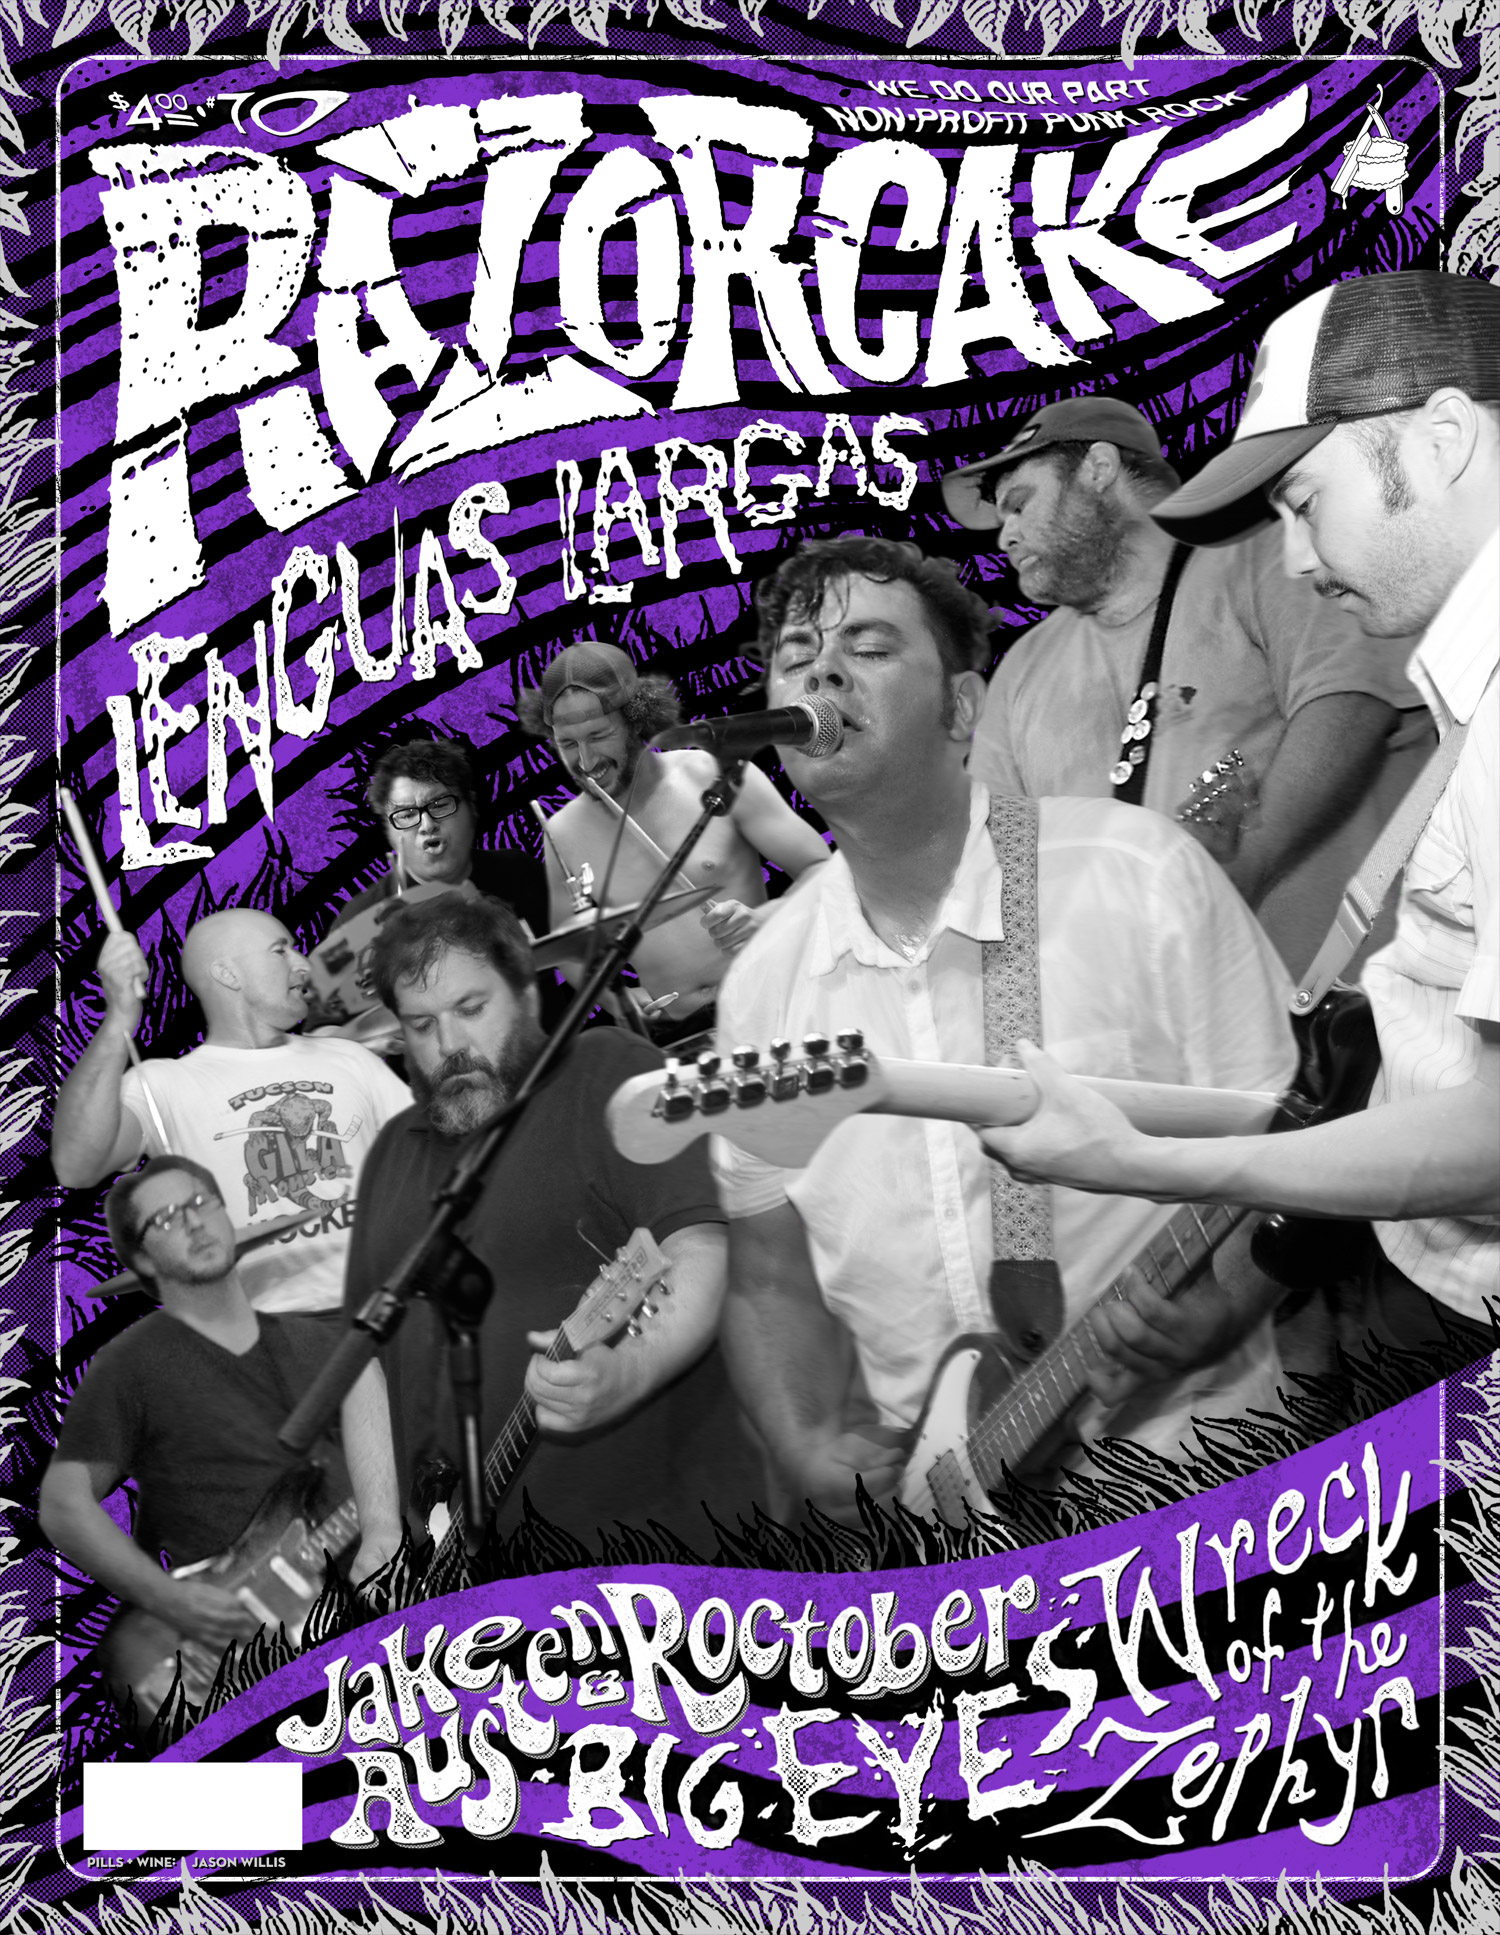 Razorcake 70 - Lenguas Largas Front Cover - Graphic Design